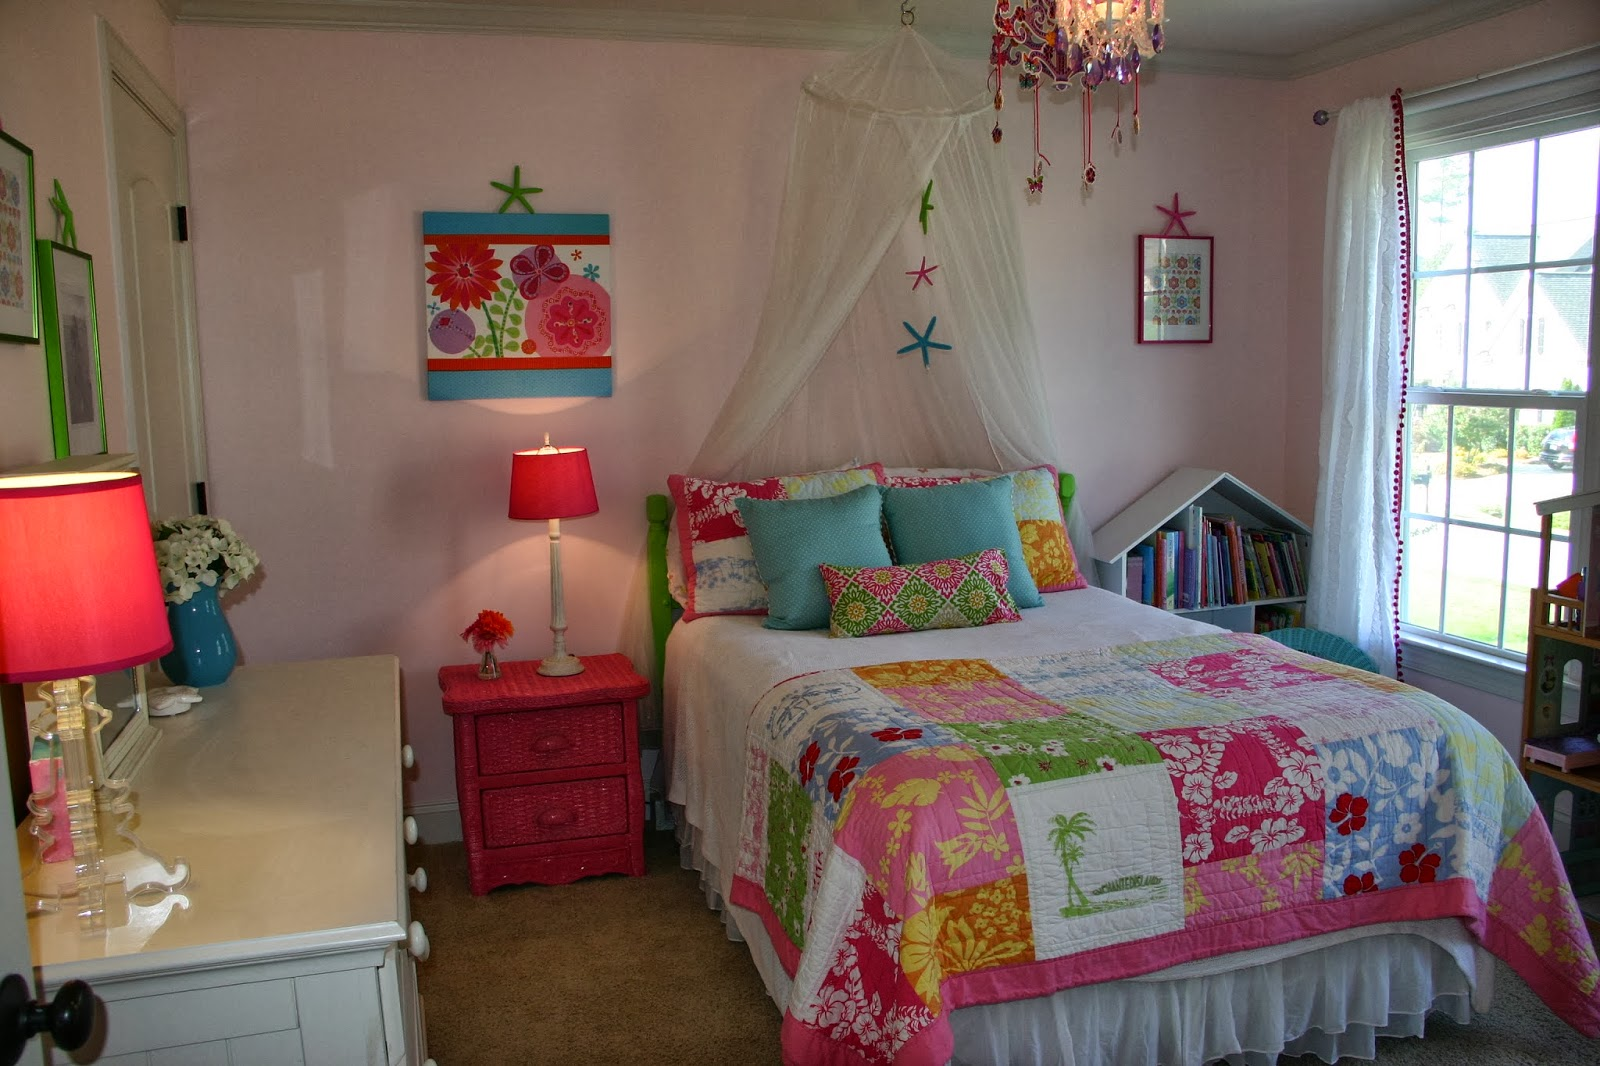 Cottage Blue Designs: Spiced Up Room for a Sparkly Girl on Room Girl  id=23306